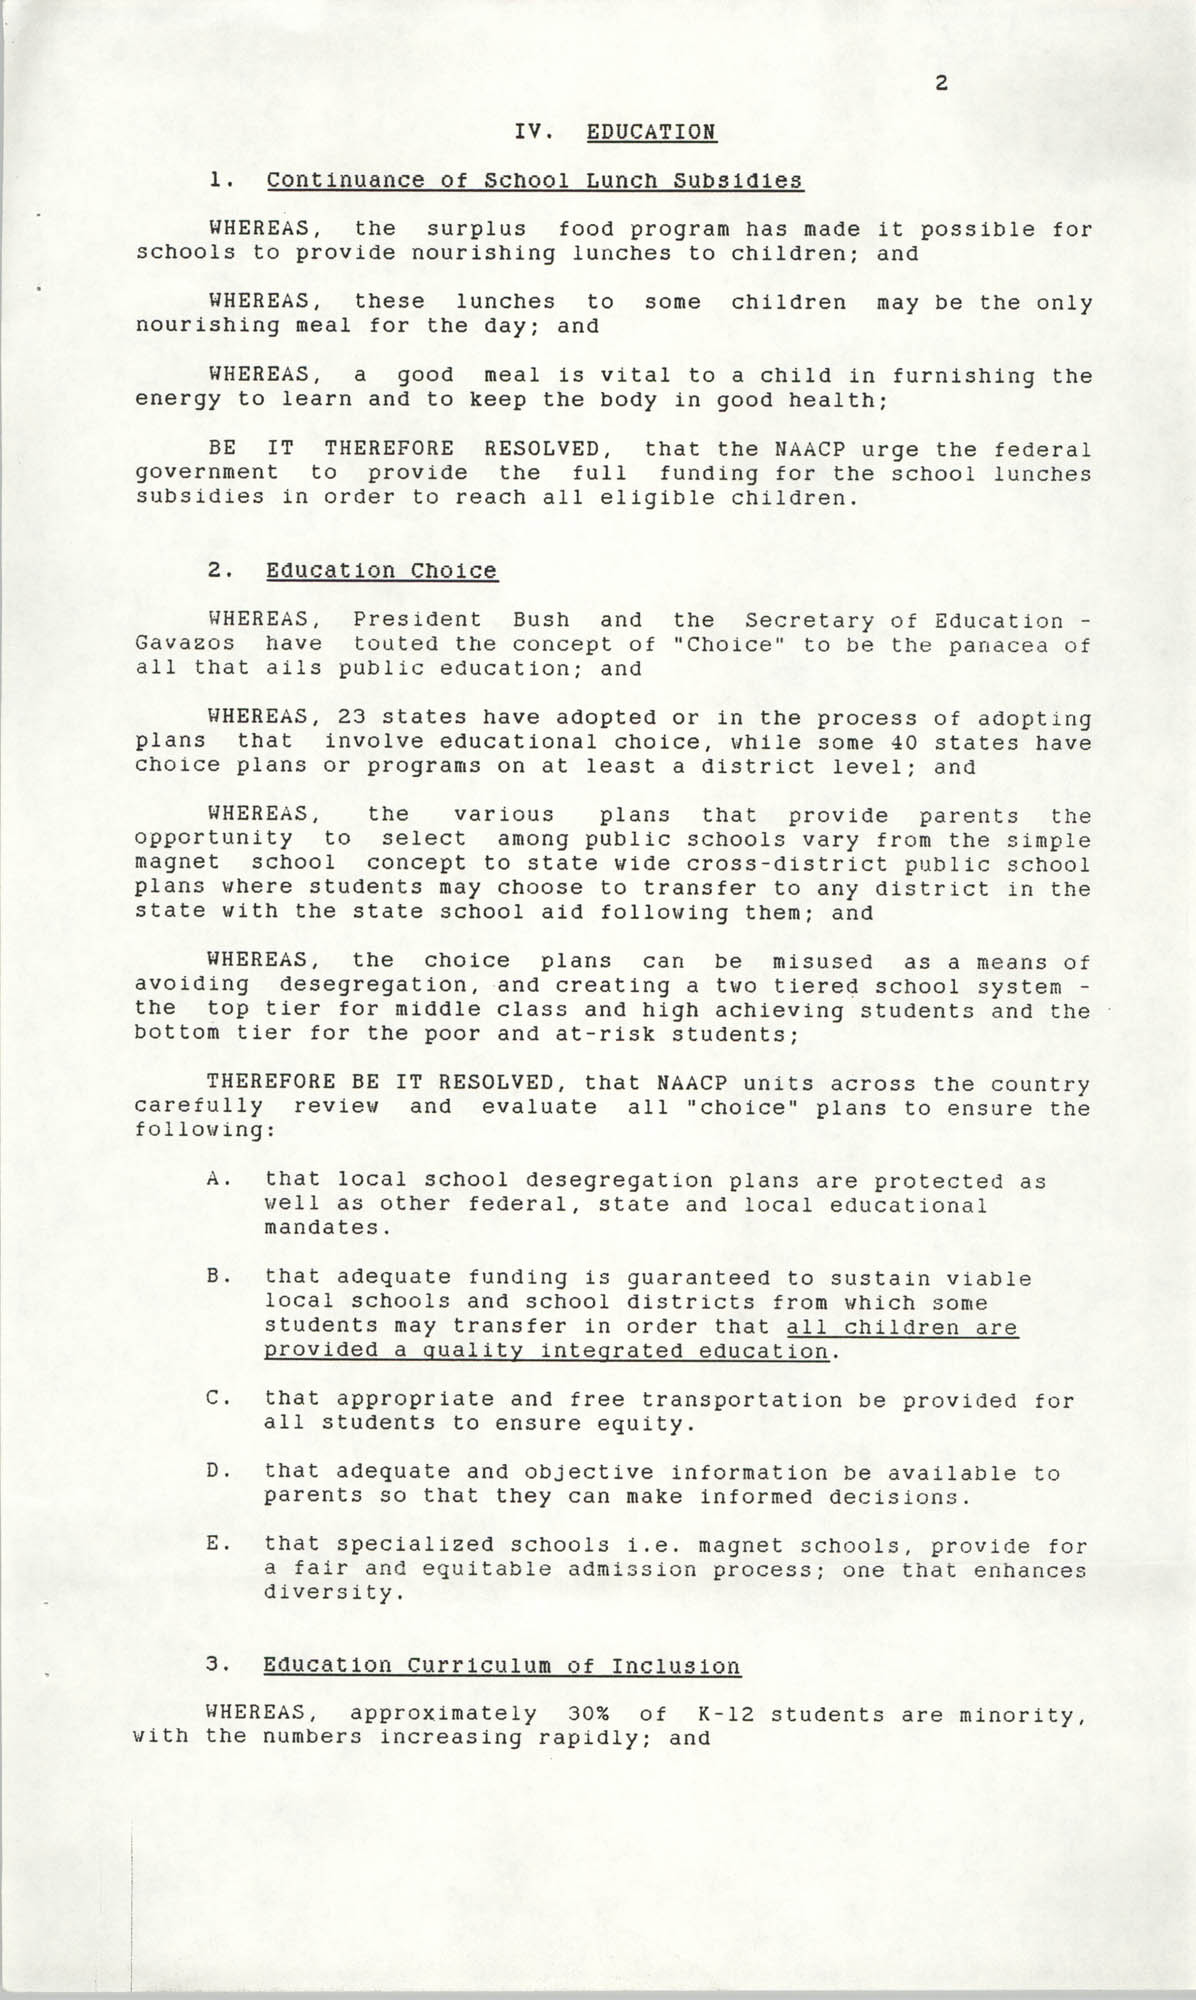 Resolutions Submitted Under Article X, Section 2 of the Constitution of the NAACP, 1990, Page 2